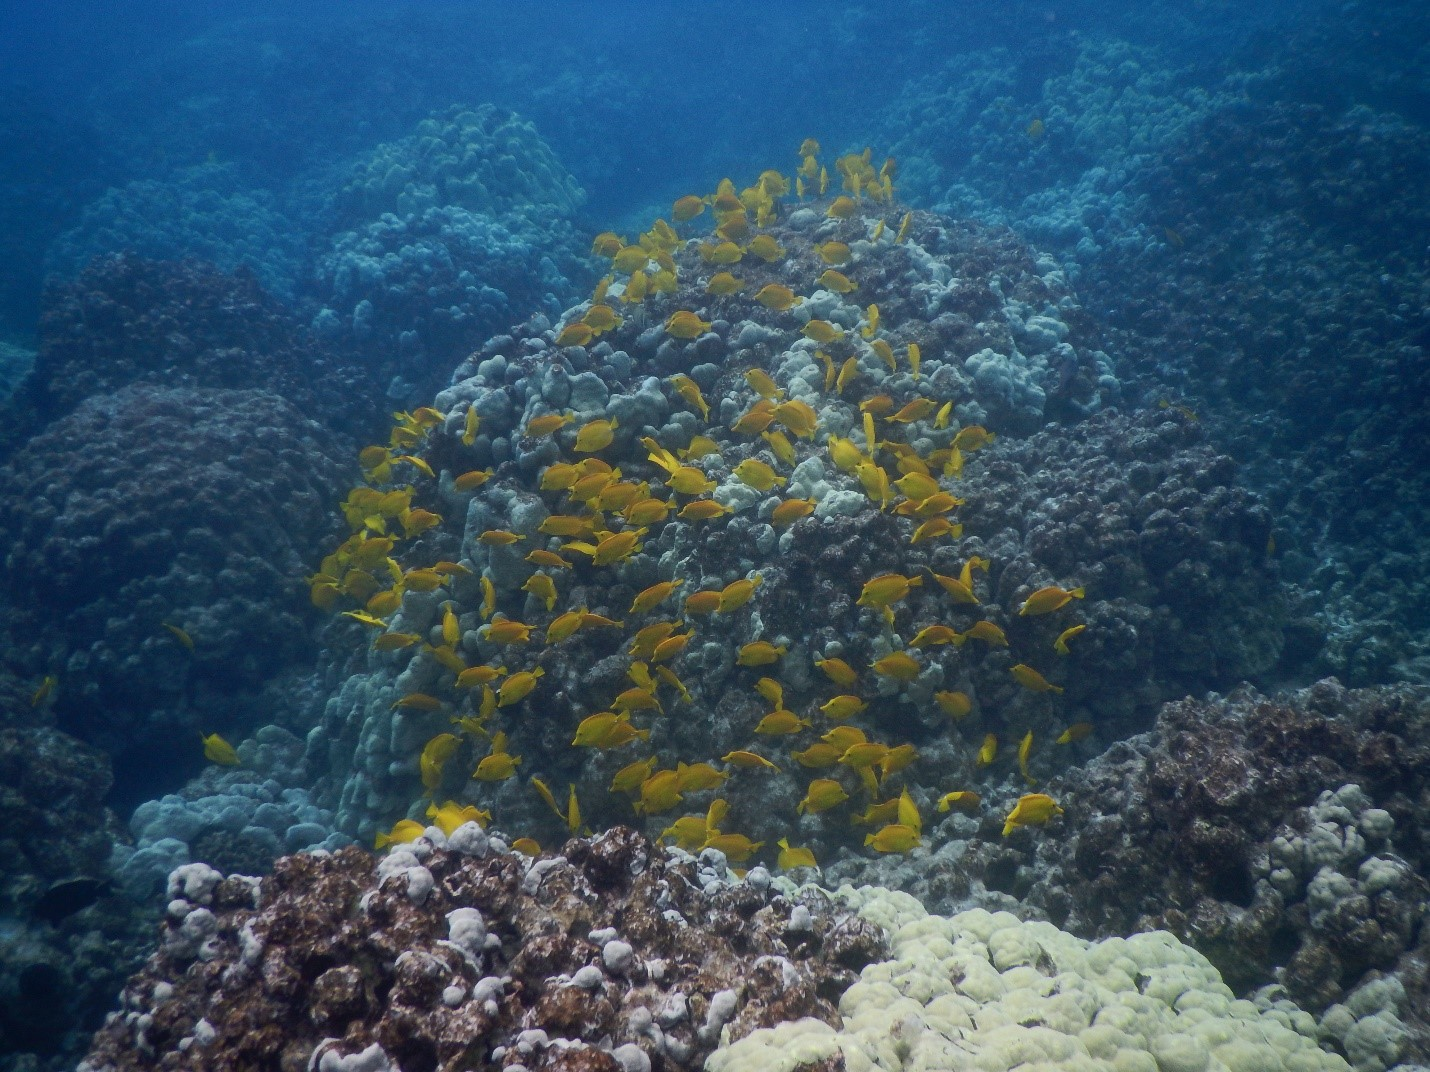 The Hawaii Coral Reef Initiative uses spatial planning and decision-support tools such as Marxan and SeaSketch to identify priorities for management